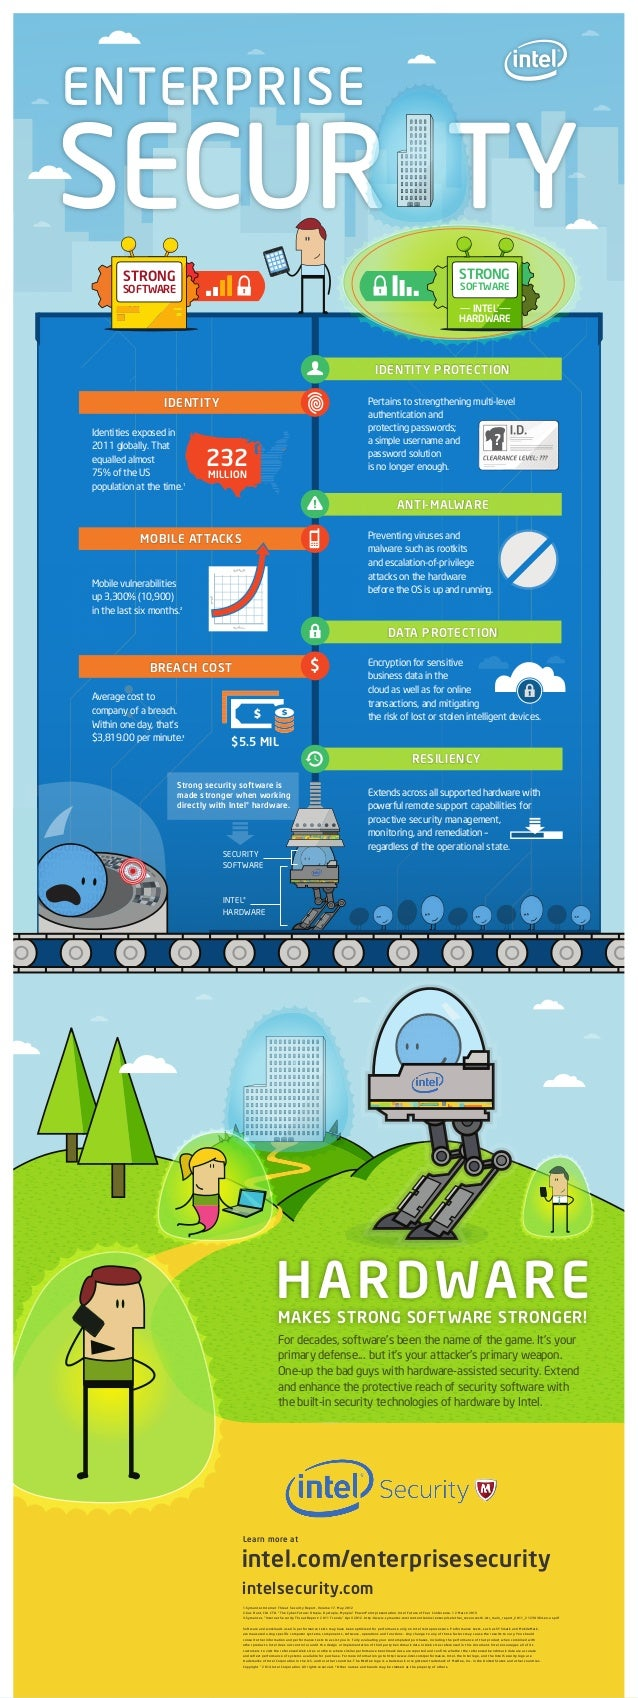 Intel Enterprise Security - Infographic